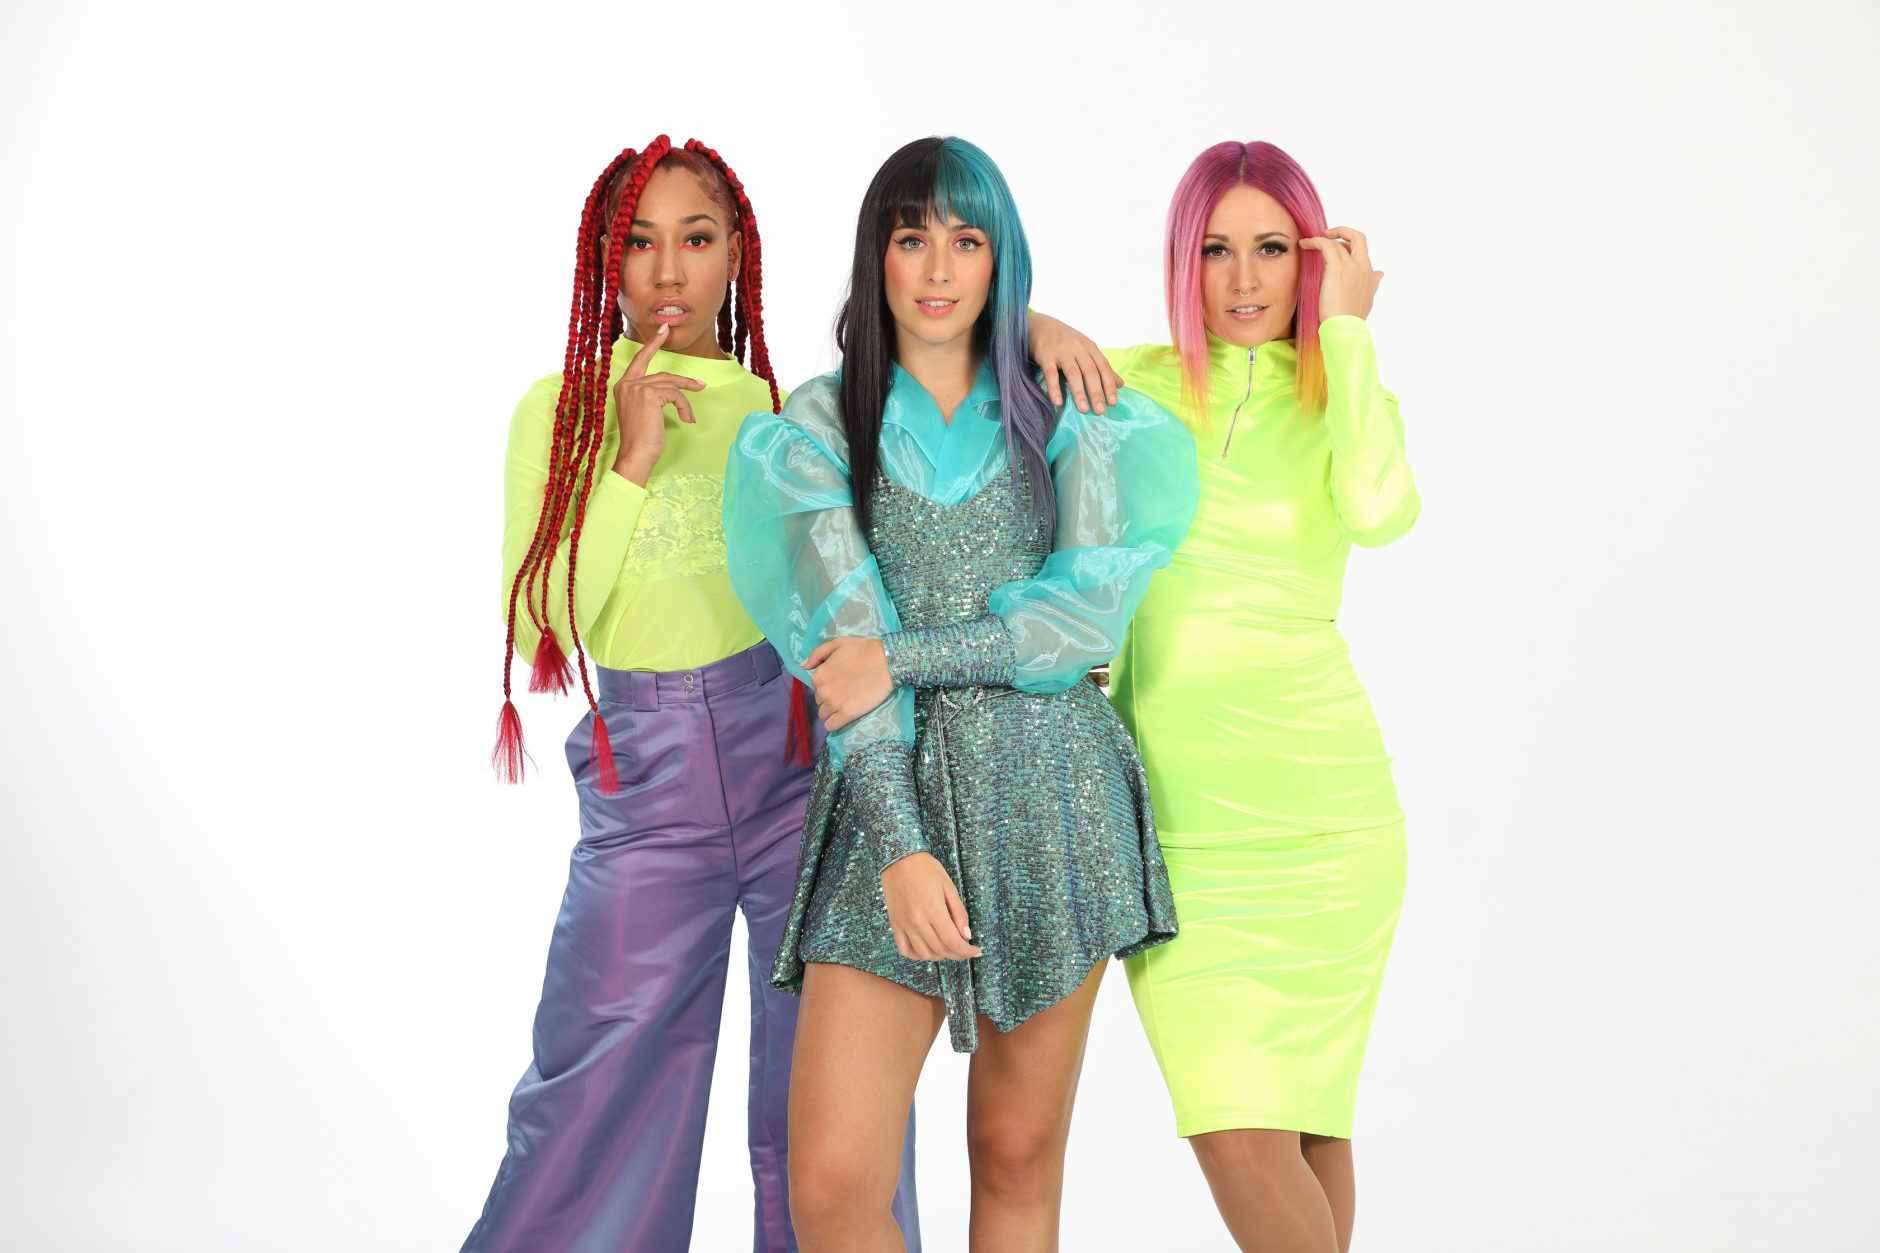 SWEET CALIFORNIA - TOUR RELOADED 2020 2